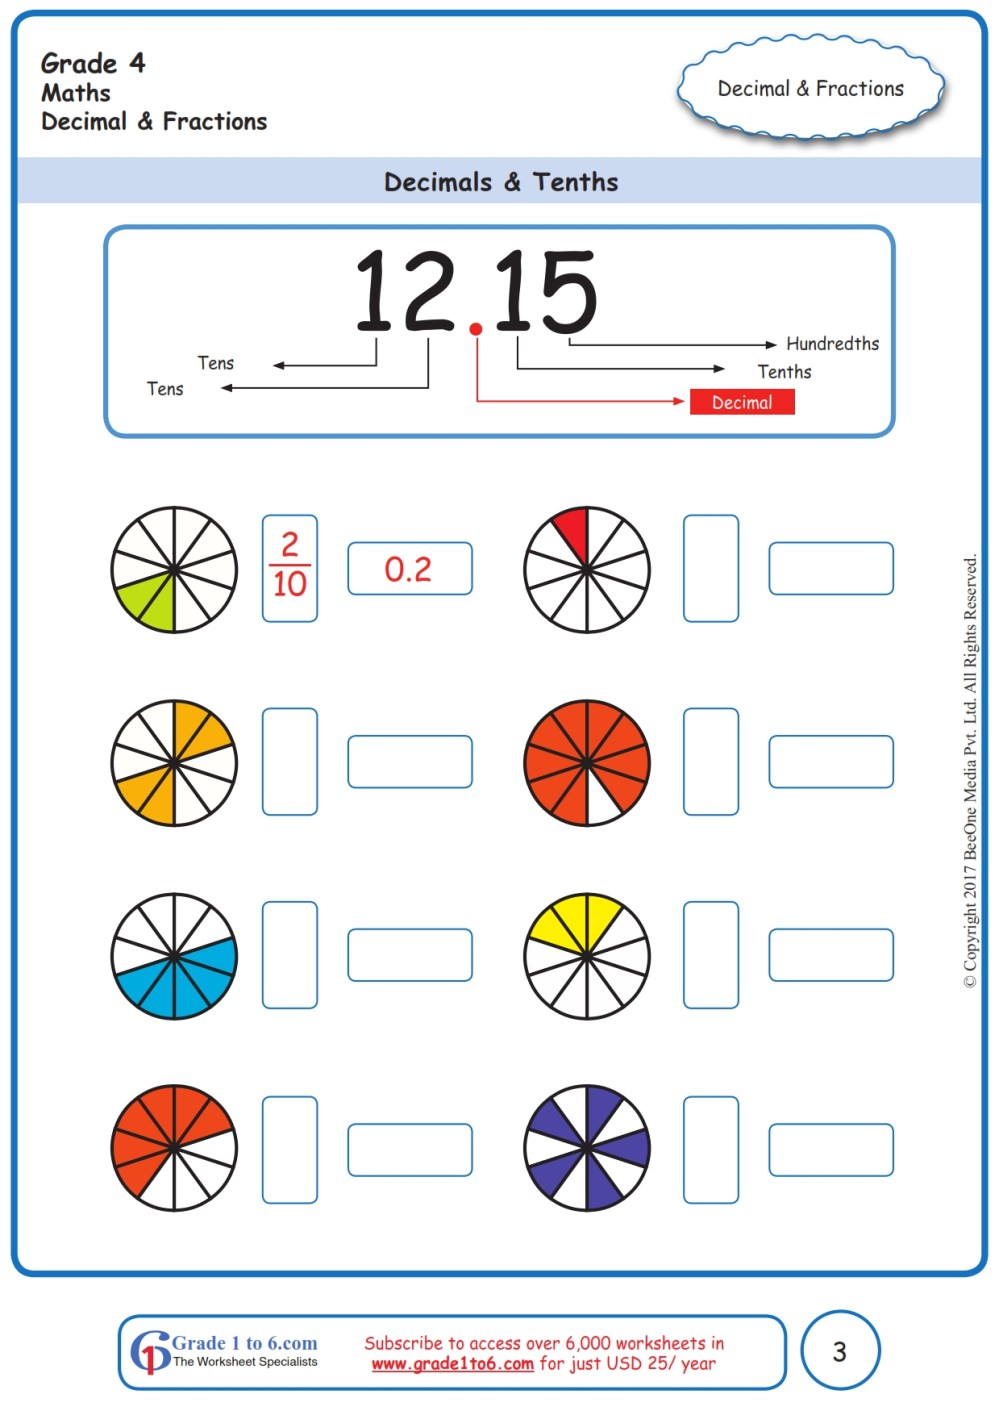 medium resolution of Grade 4 Decimals Worksheets www.grade1to6.com